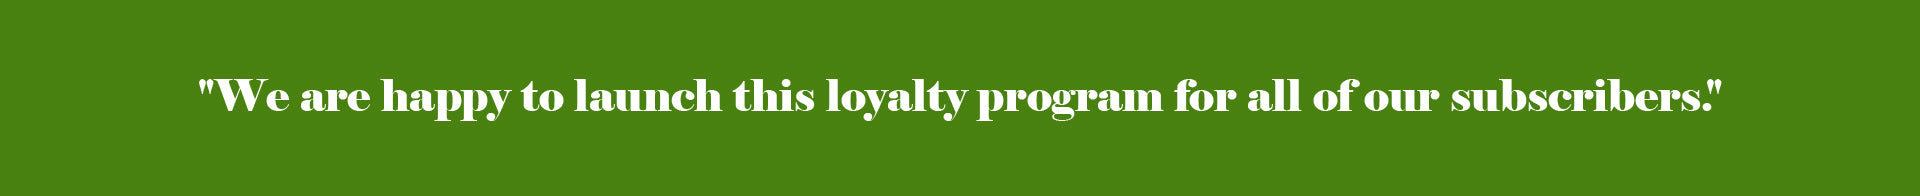 We are happy to launch this loyalty program for all of our subscribers.